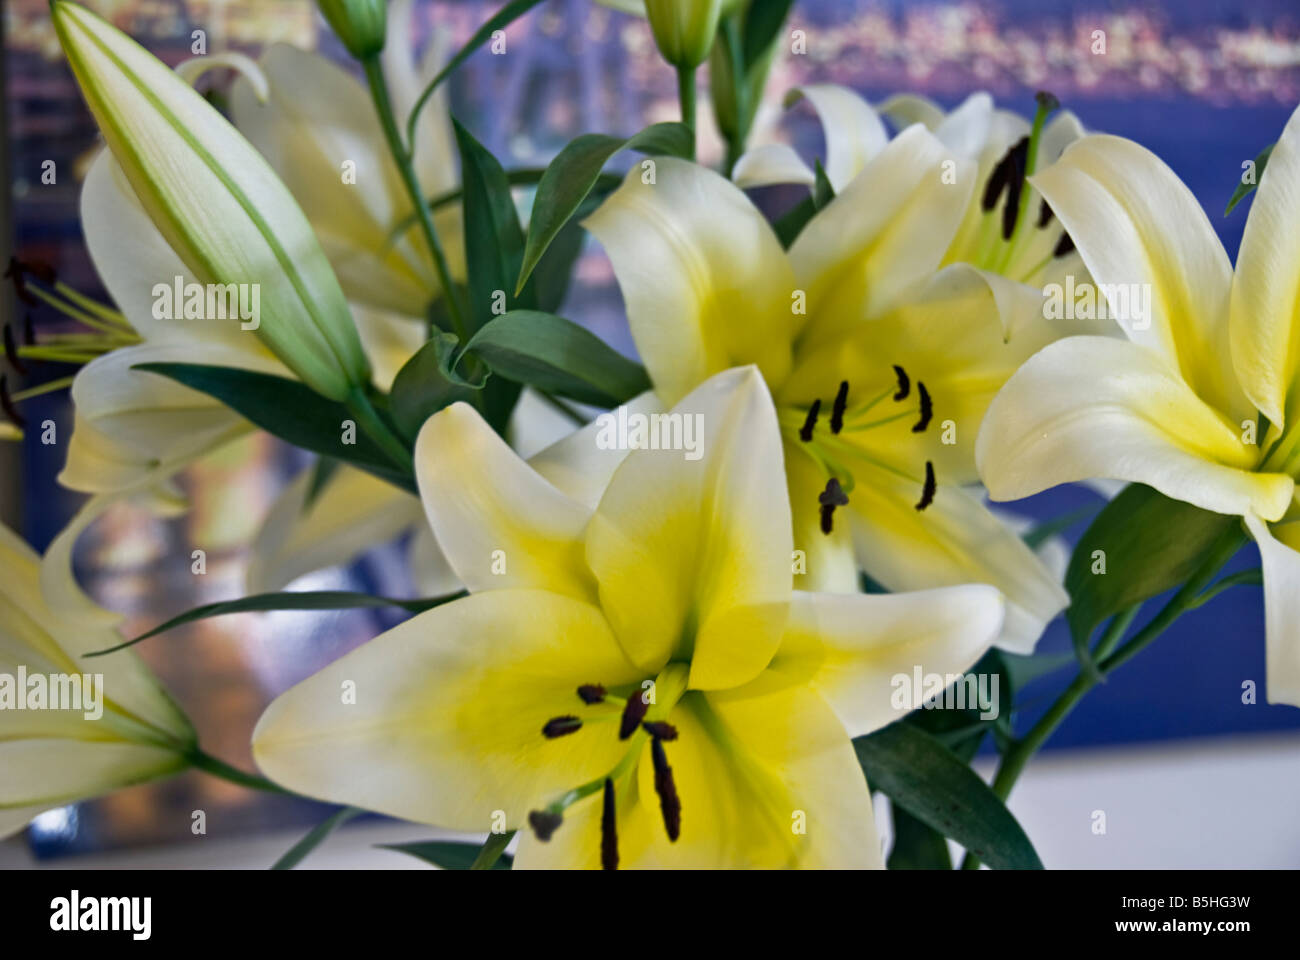 lily, Liliaceae, plant  classified in the division Magnoliophyta, class Liliopsida, order Liliales, family Liliaceae Stock Photo